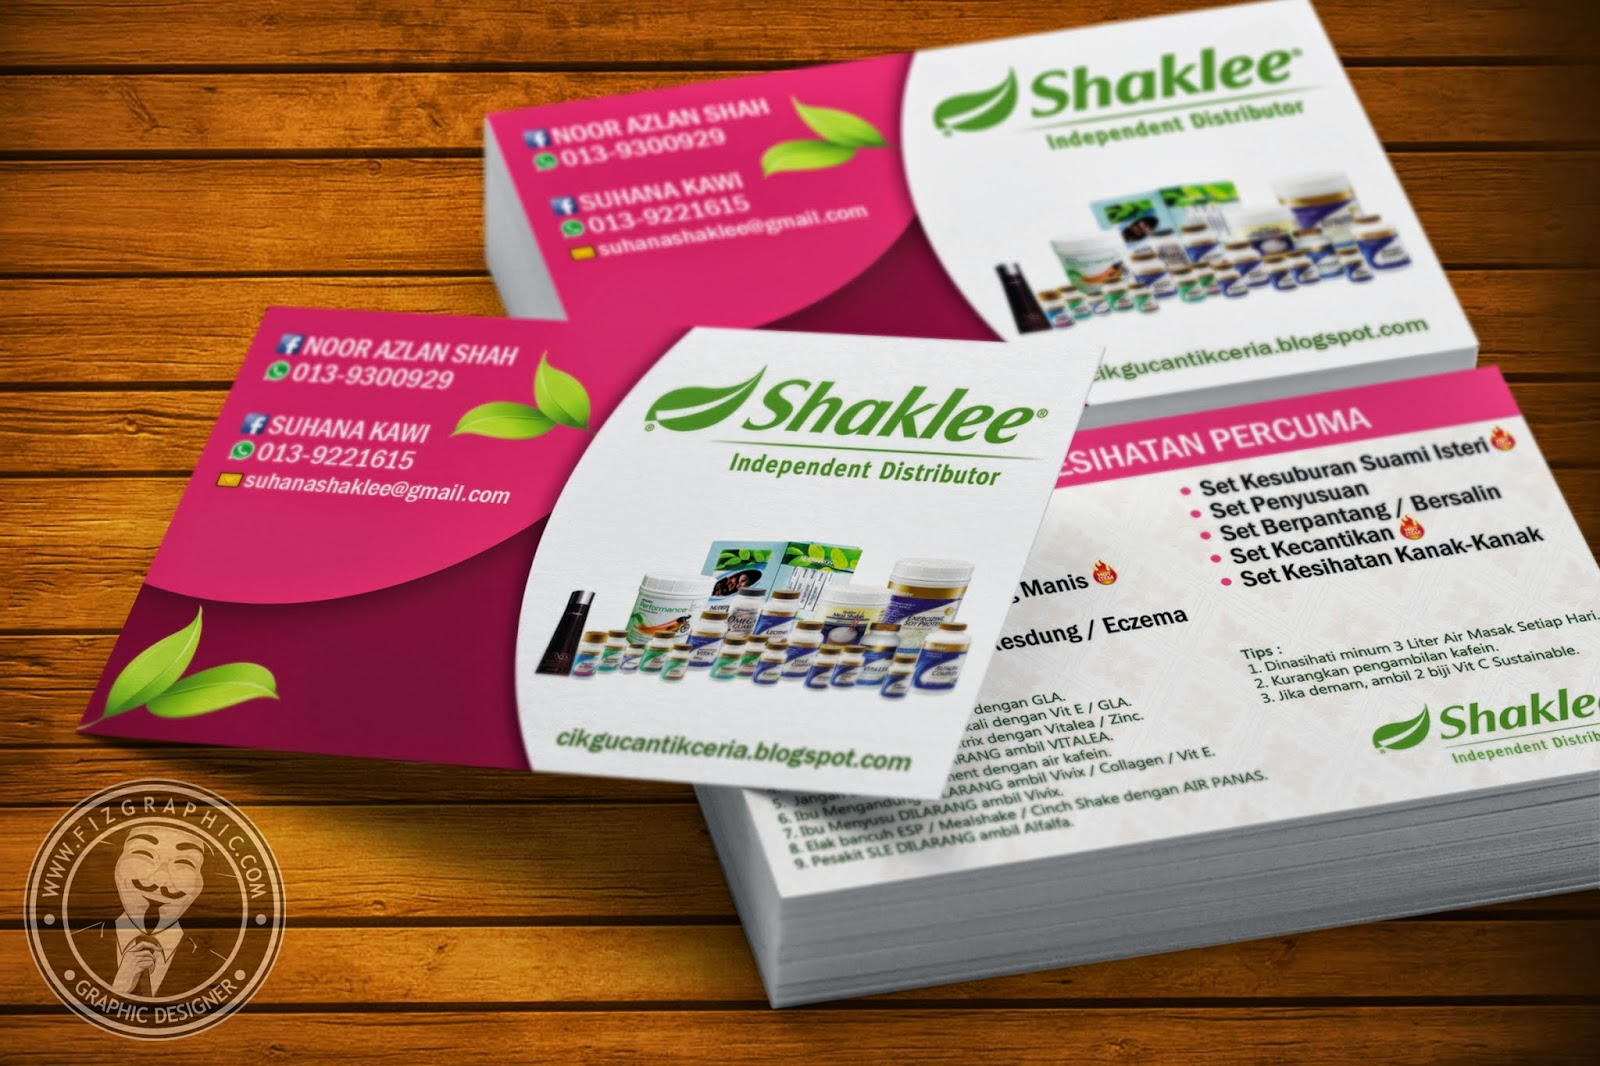 Fizgraphic design printing business card 86 for Shaklee business cards